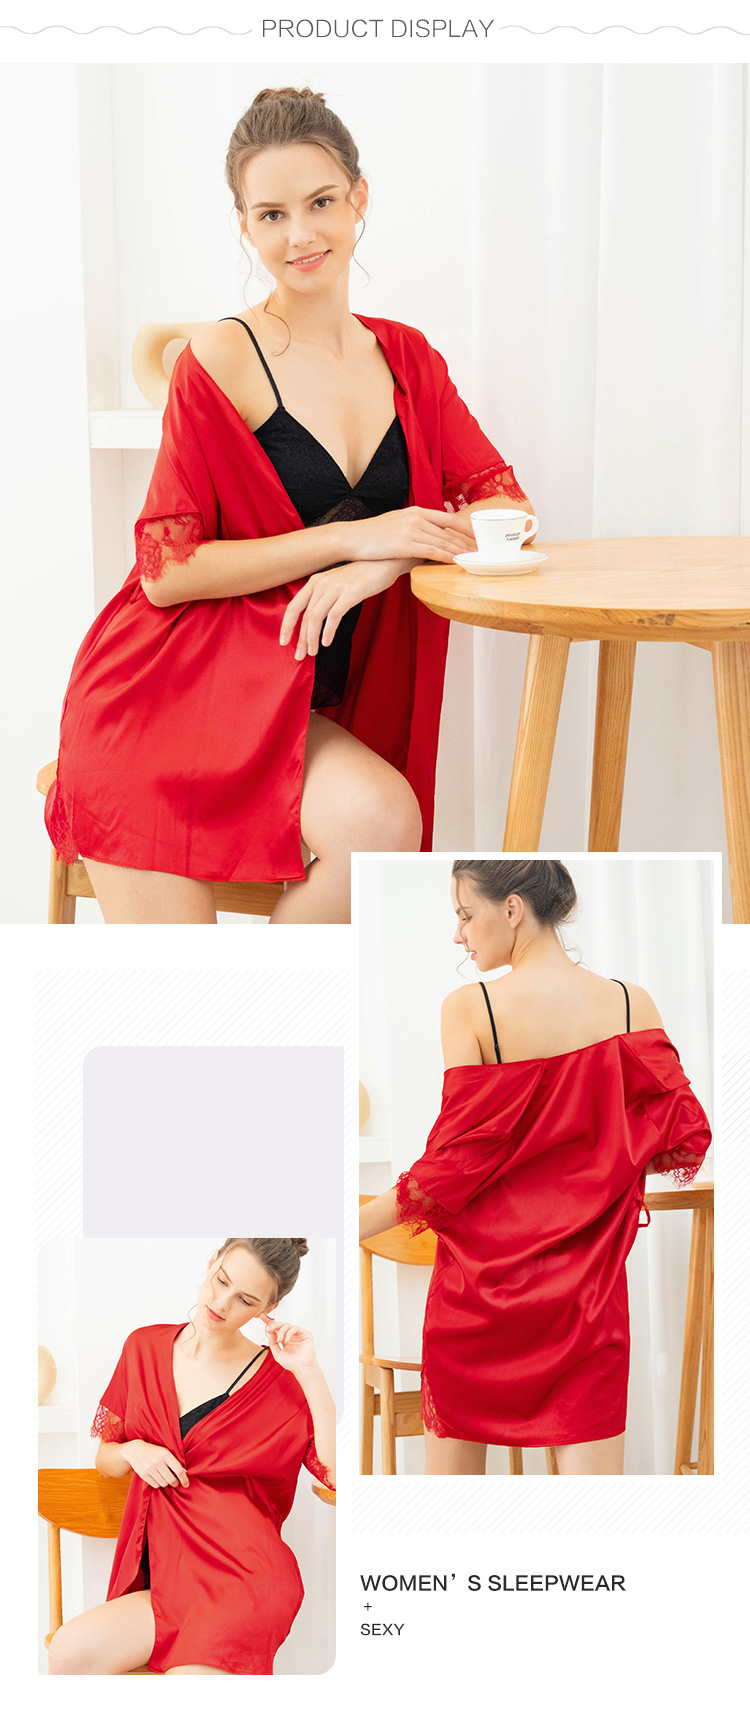 Women robe-product display